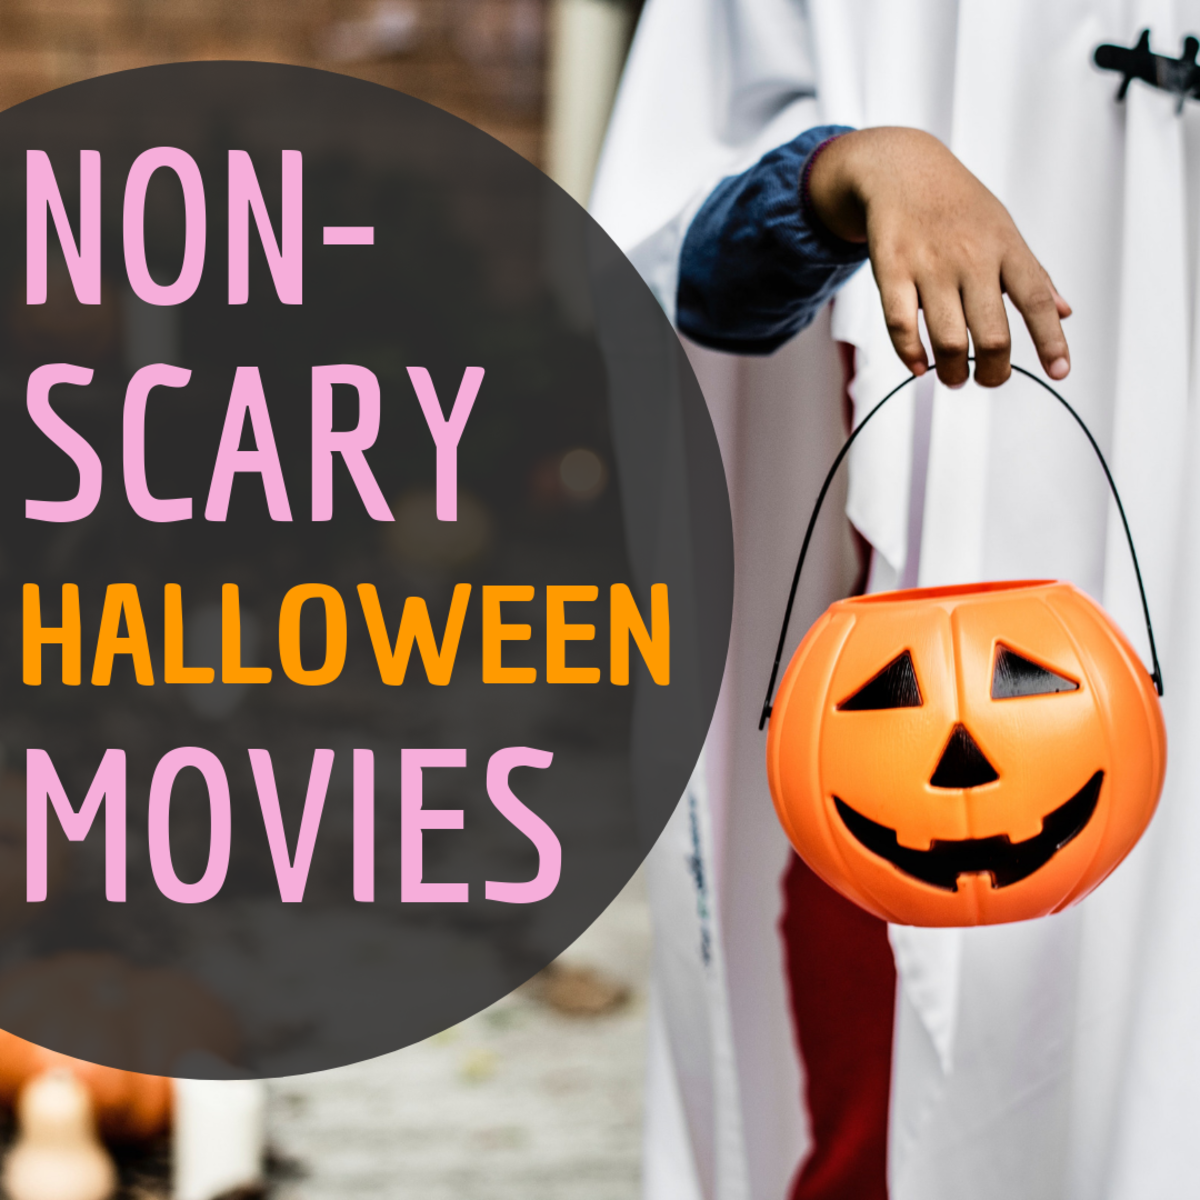 30+ Non-Scary Halloween Movies for Adults, Teens, and Kids